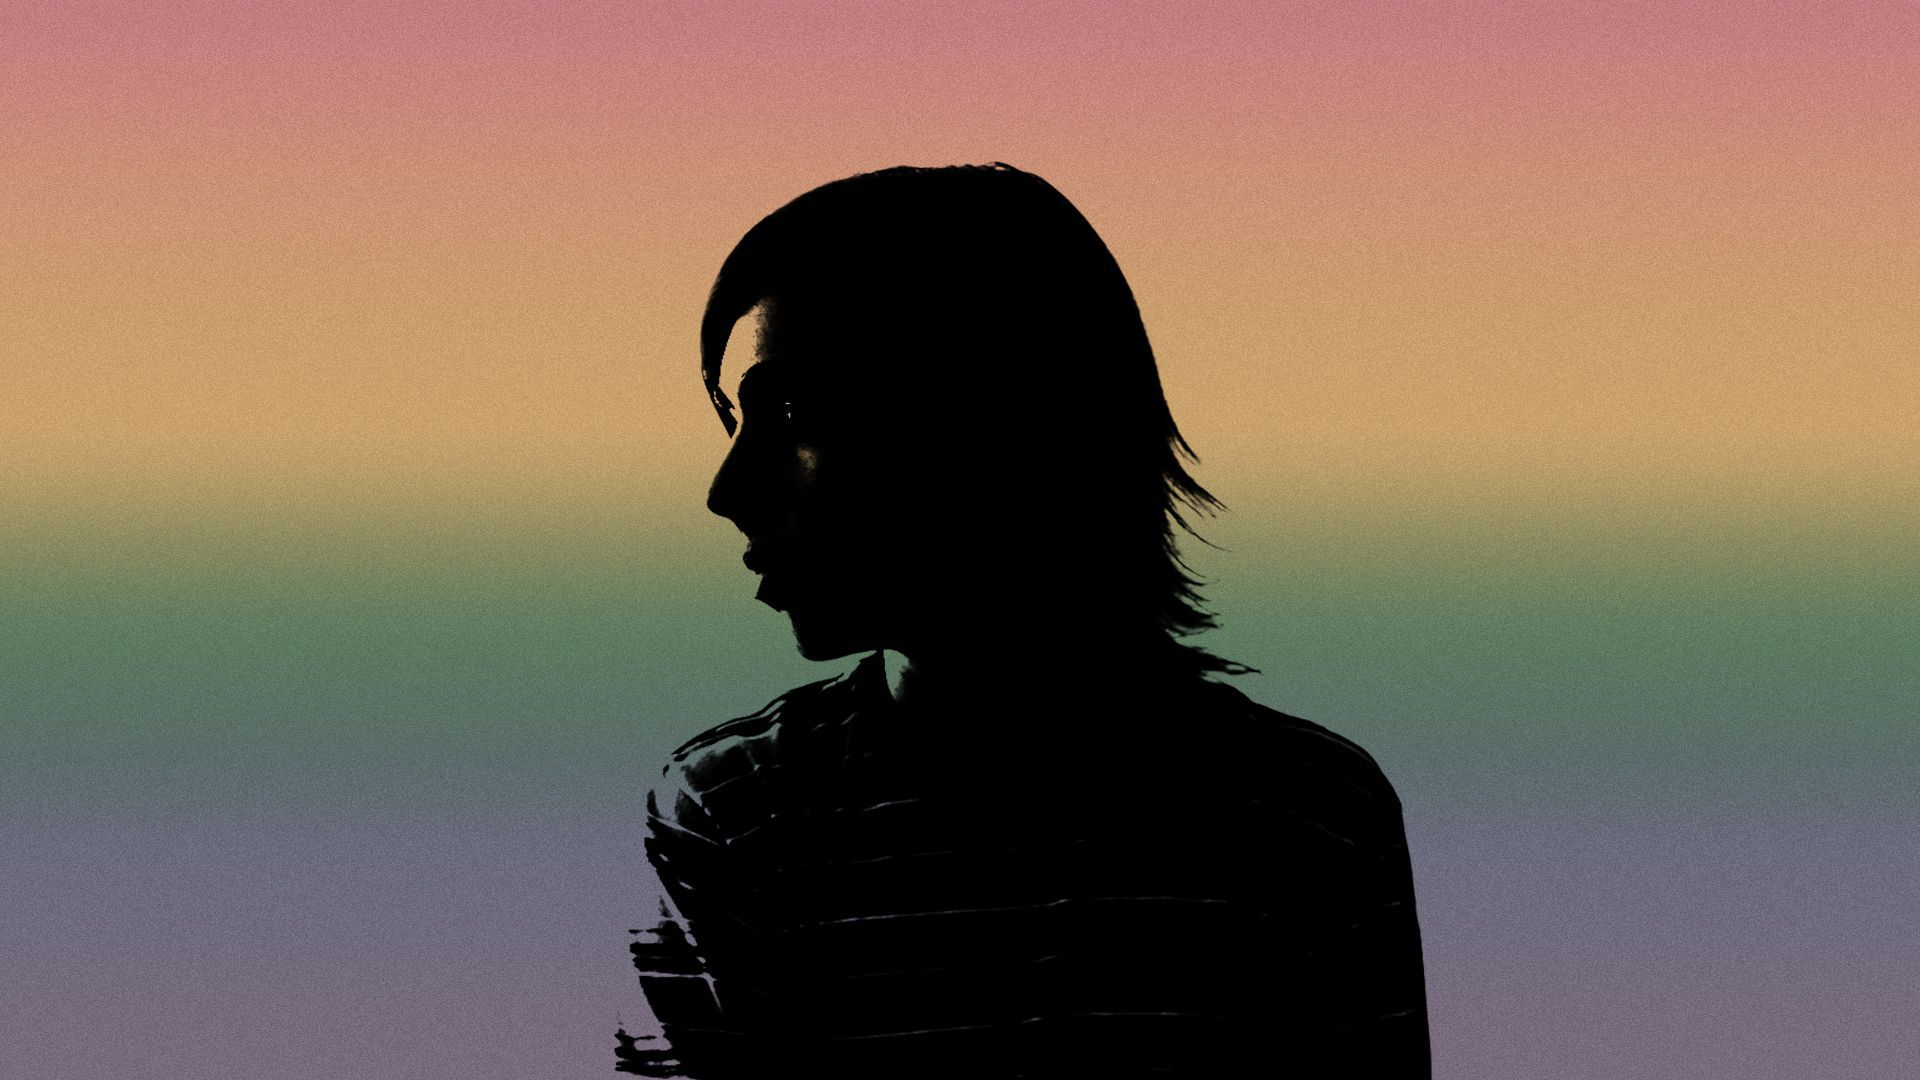 Illustration of the colors of the LGBTQ Pride flag projected over the silhouette of a teenager.